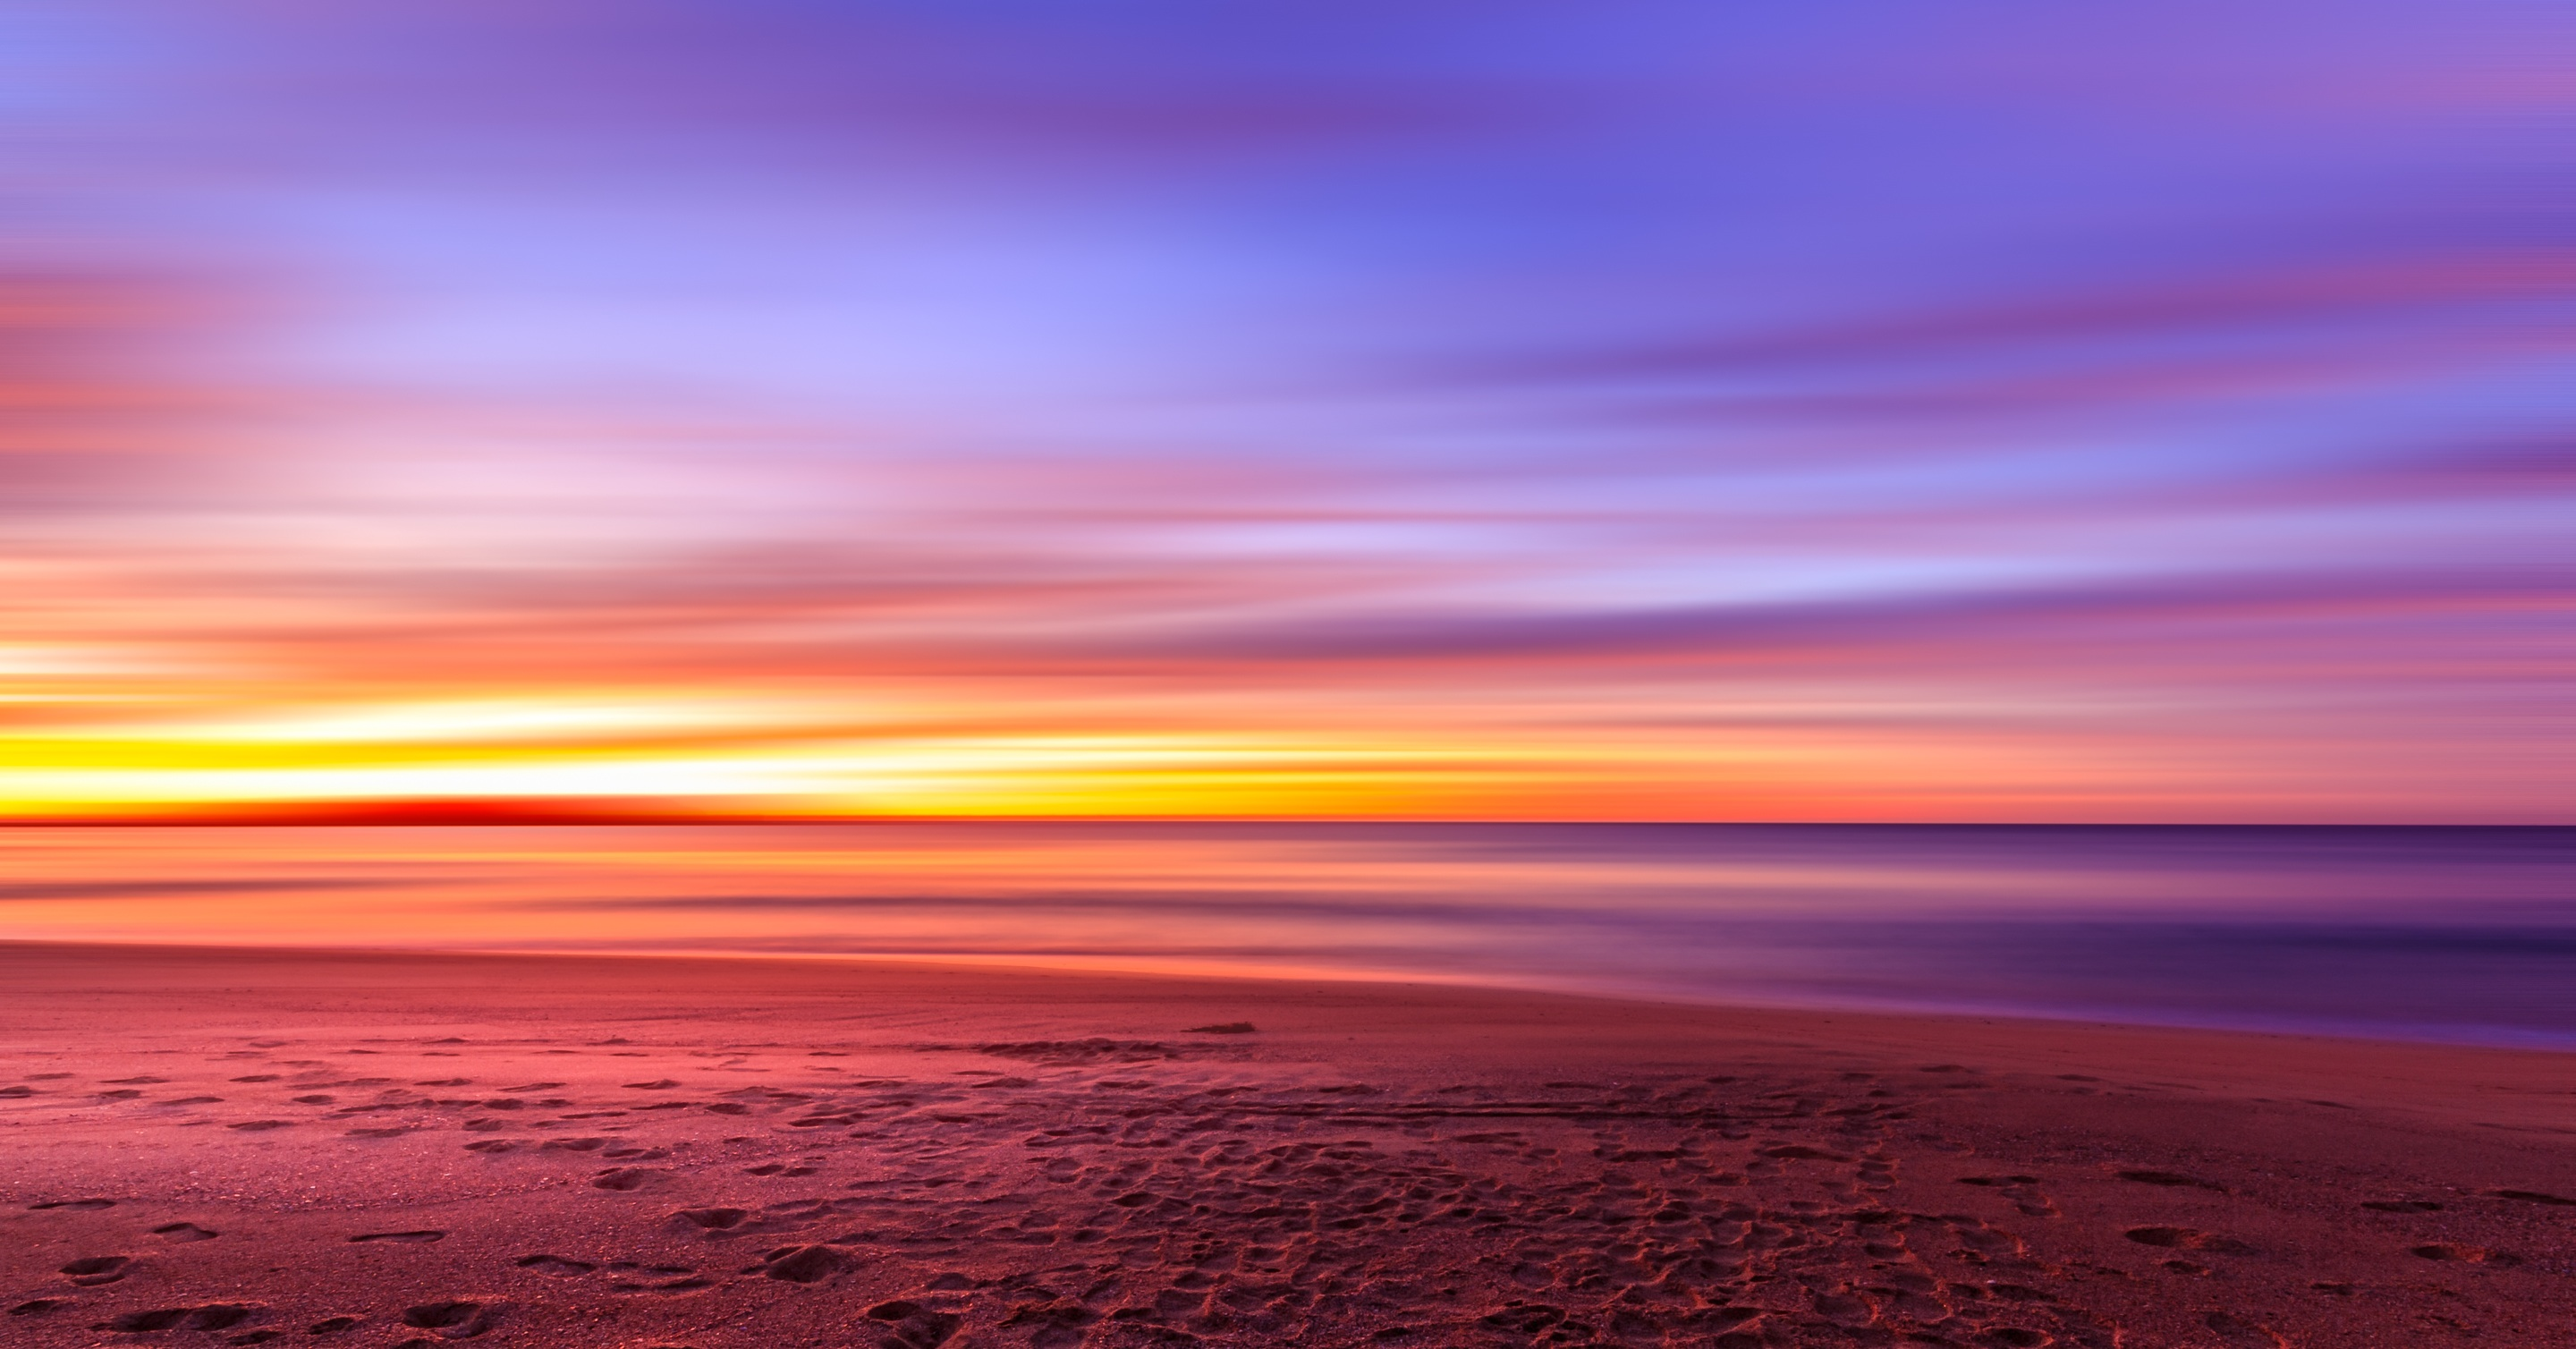 Colors of sunrise on the beach, sunrise, beach, sun, sand, ocean, water, sea